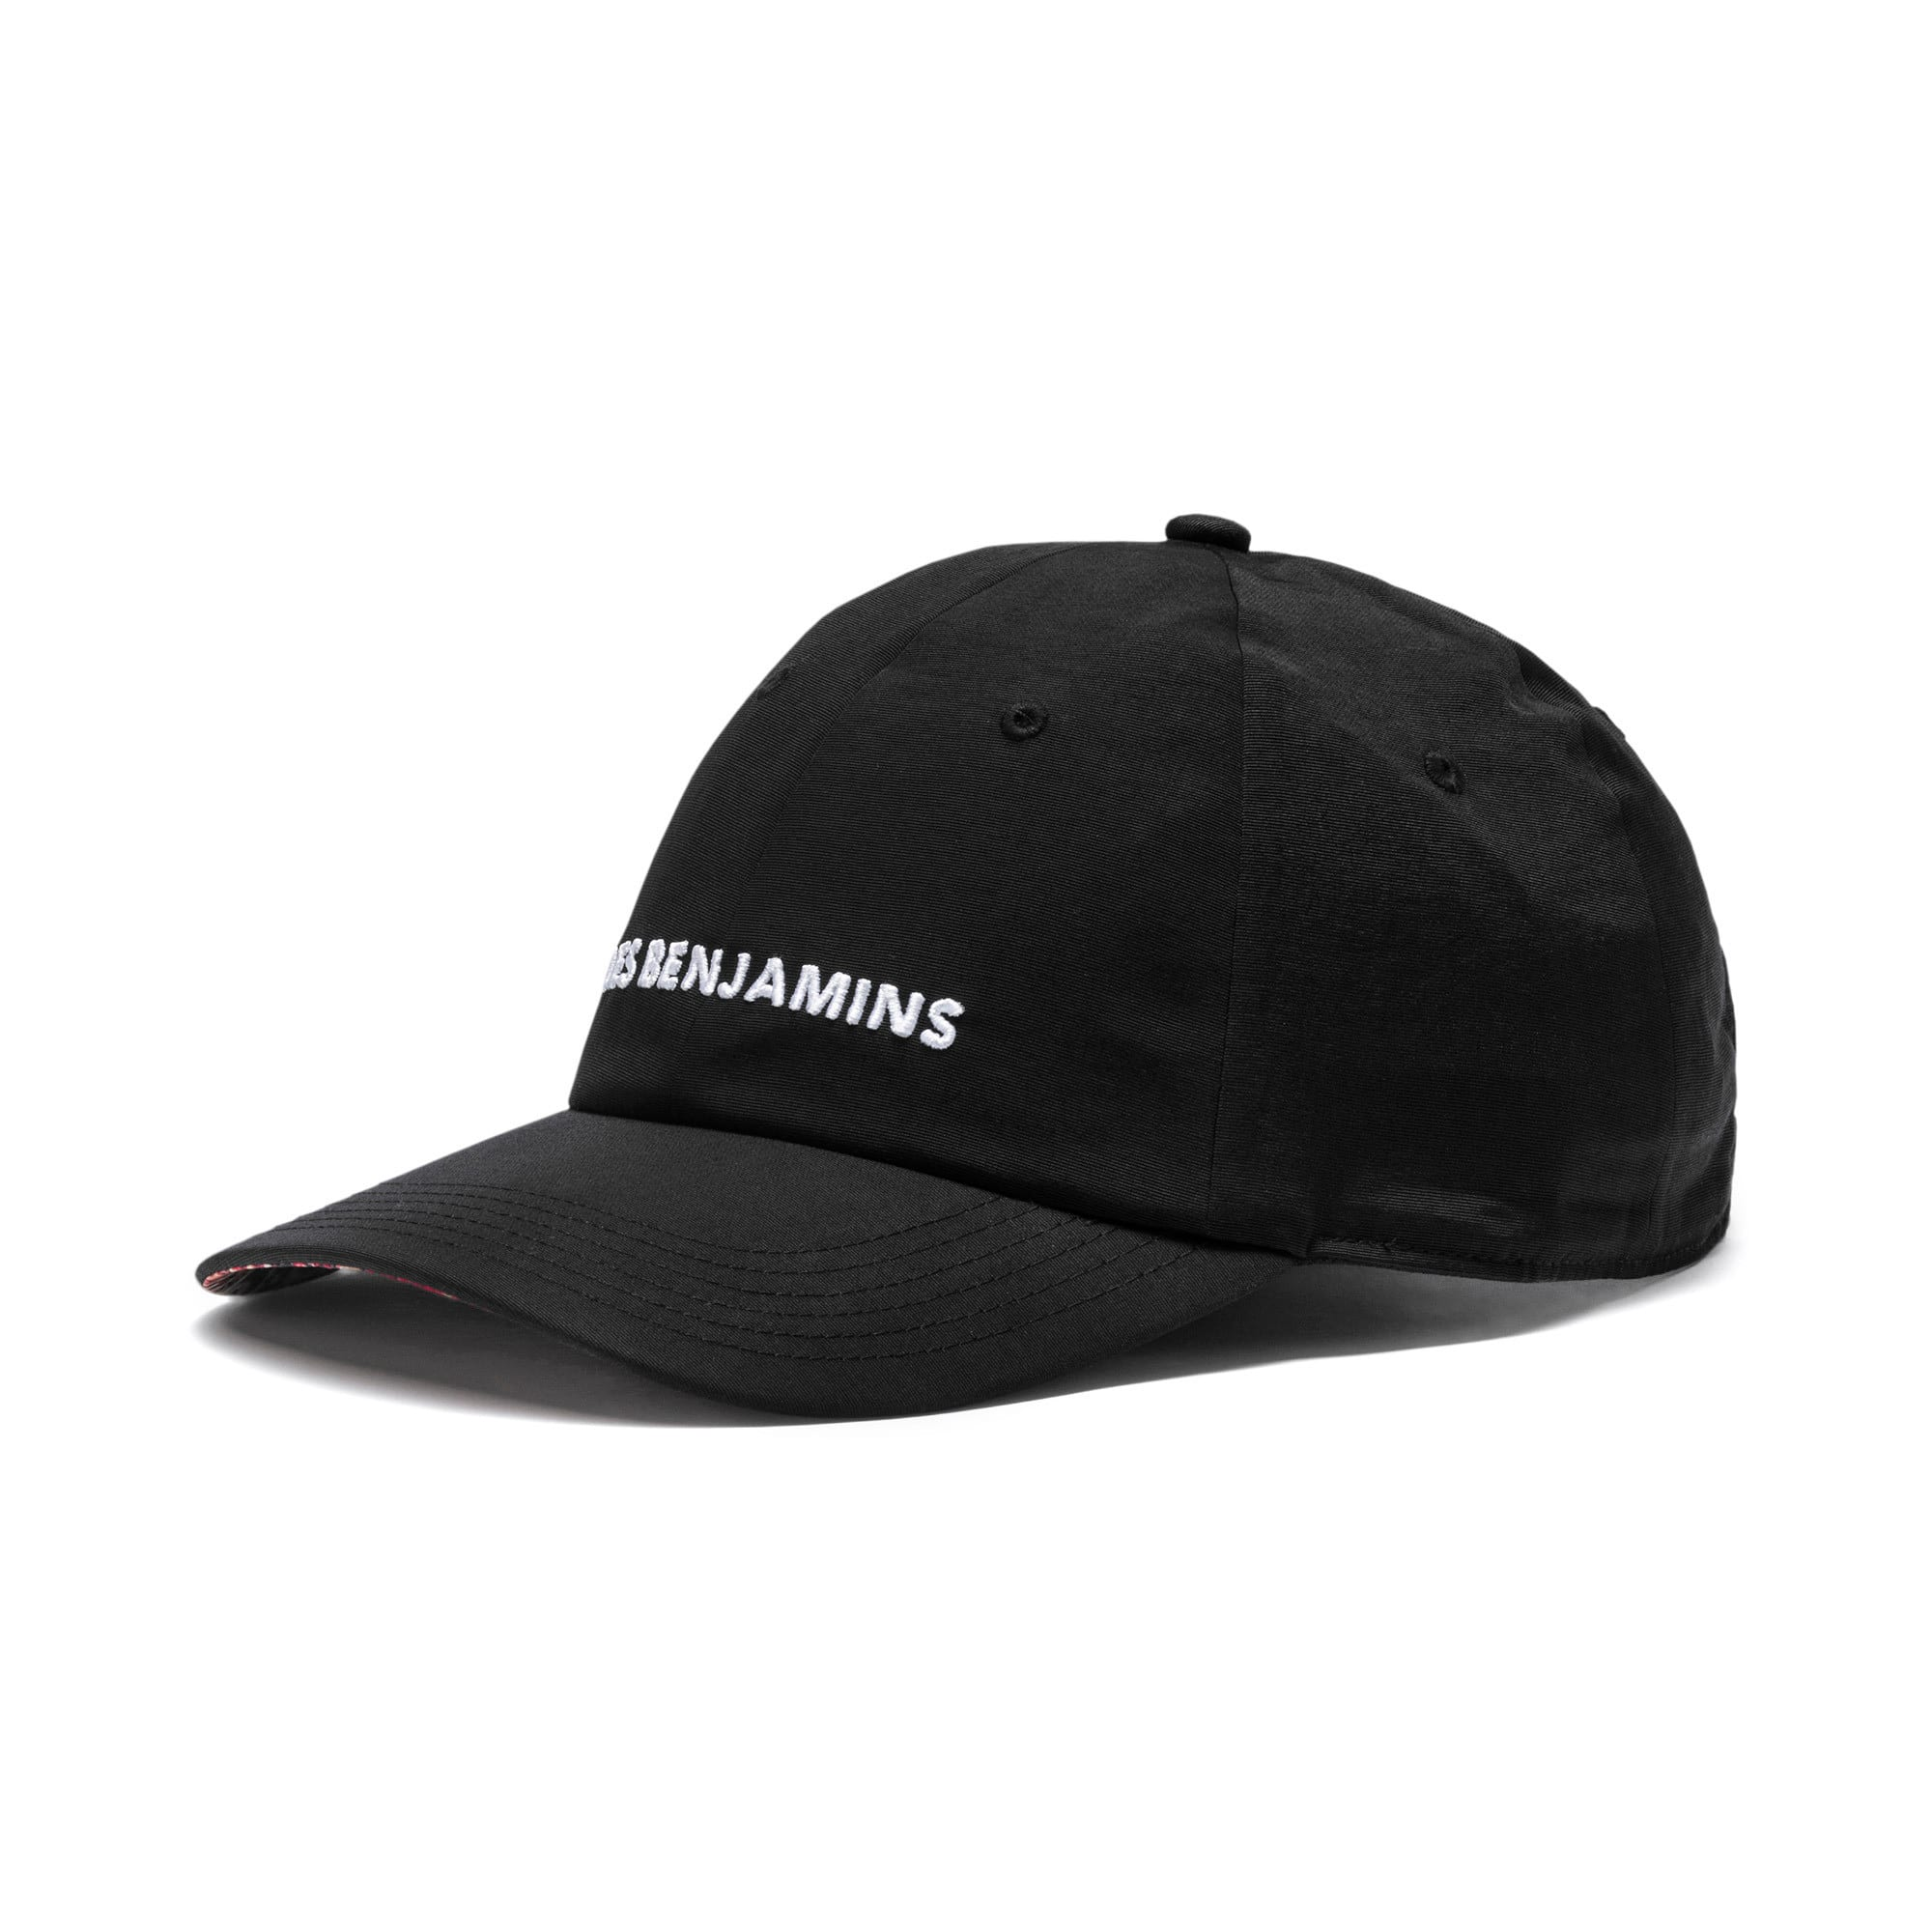 Thumbnail 1 of PUMA x LES BENJAMINS Cap, Puma Black, medium